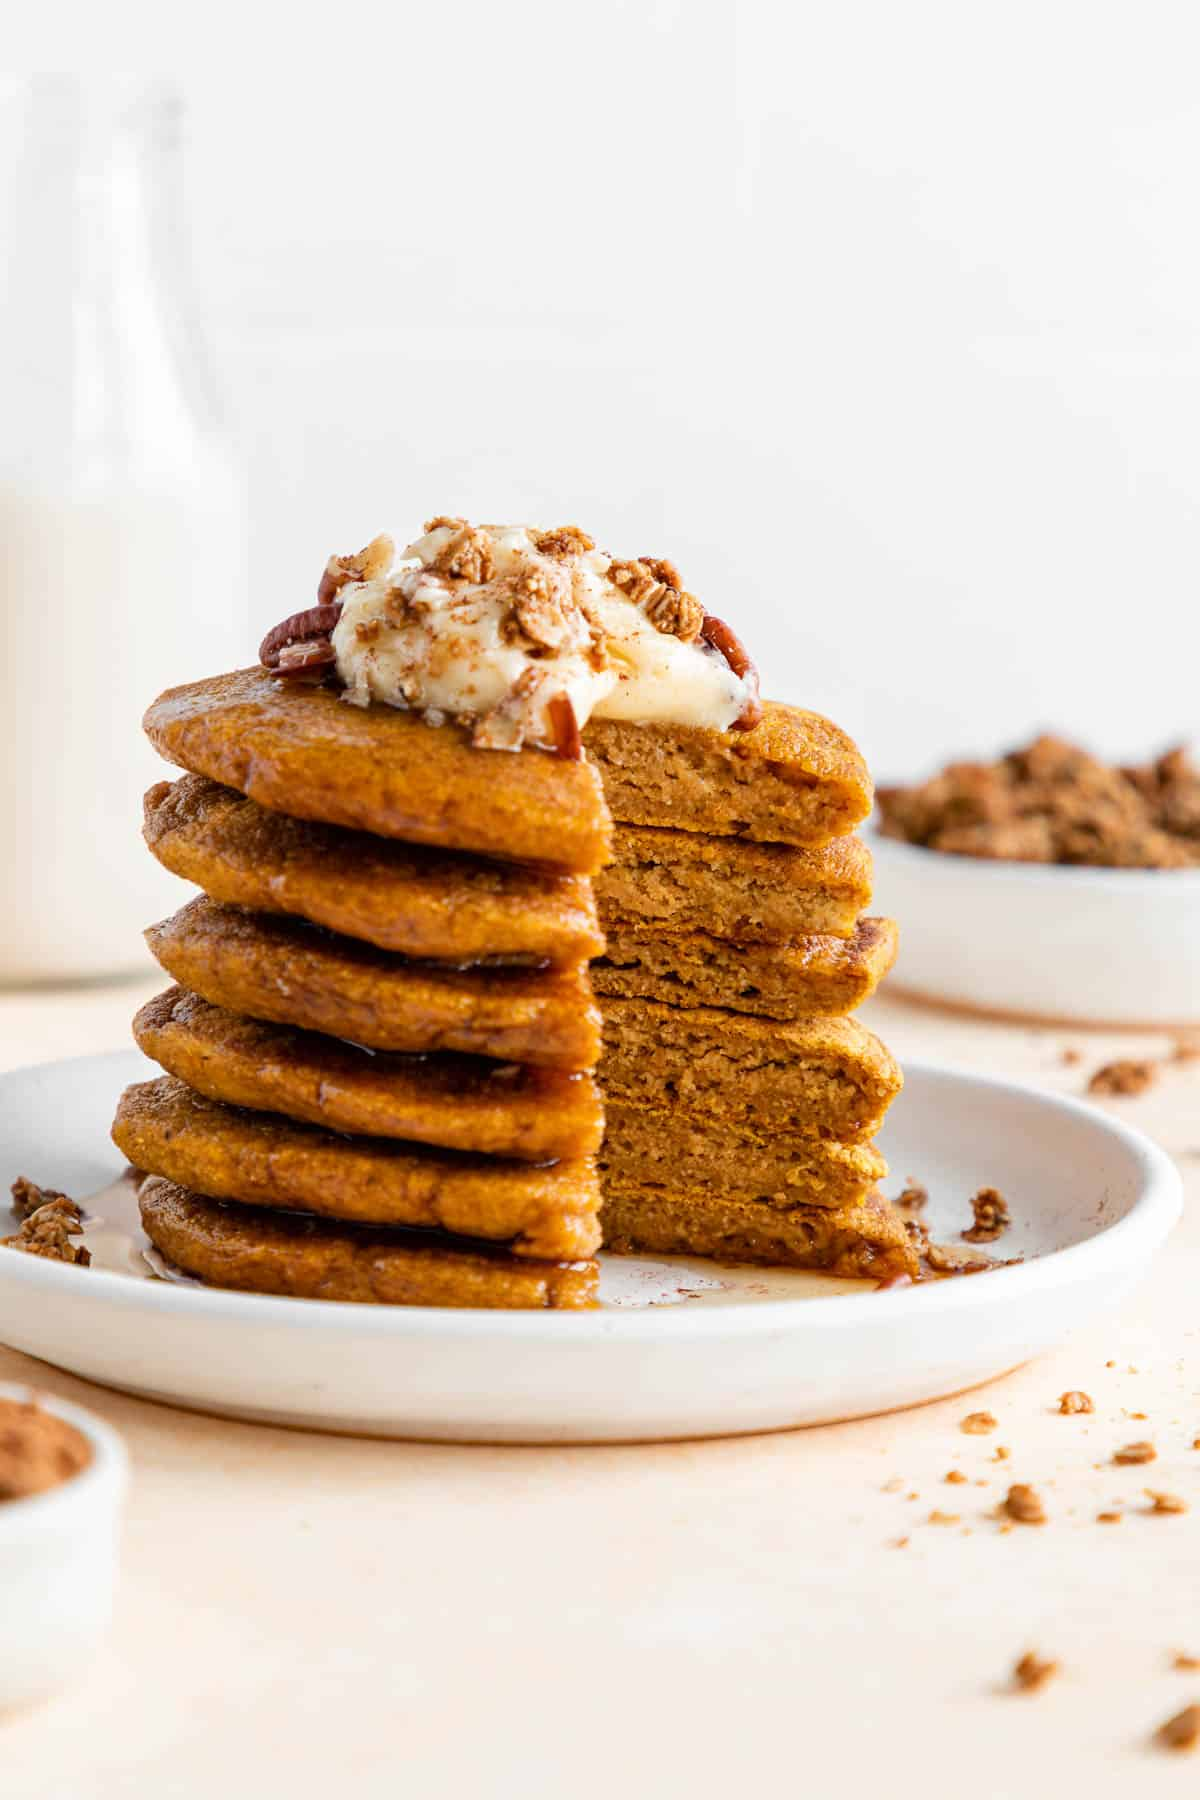 a sliced stack of vegan pumpkin pancakes on a plate with frosting and maple syrup